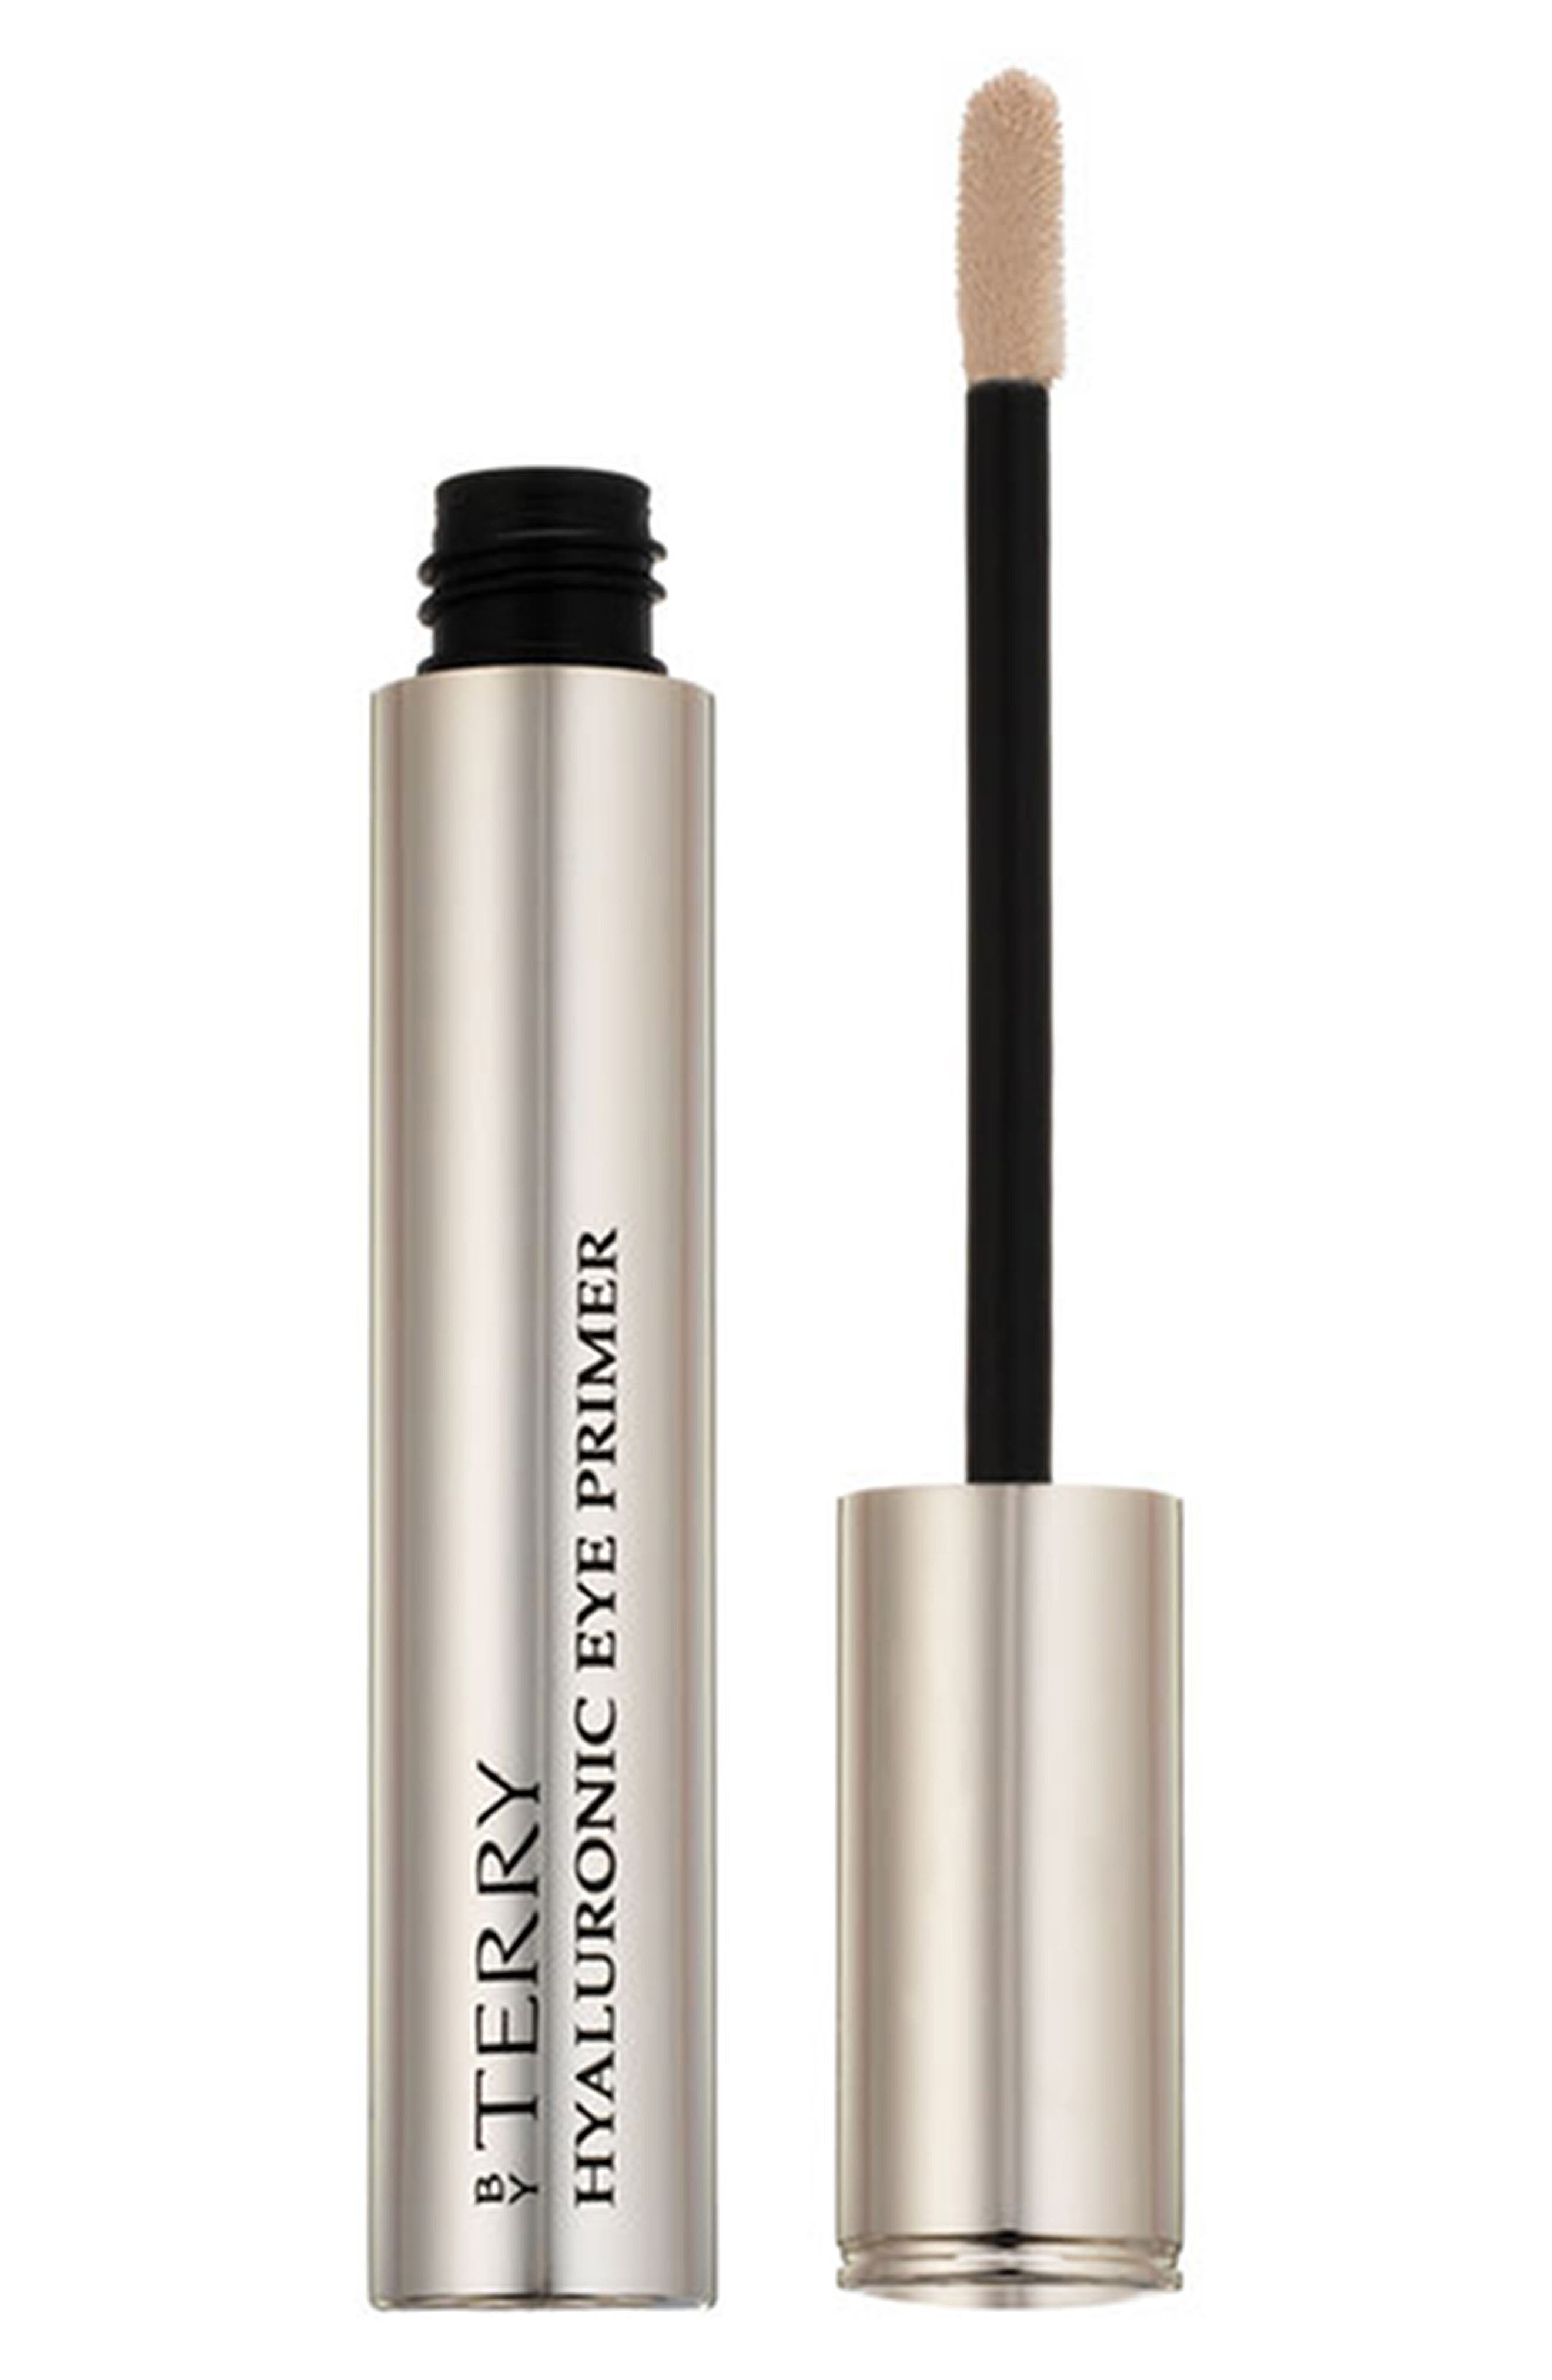 SPACE.NK.apothecary By Terry Hyaluronic Eye Primer